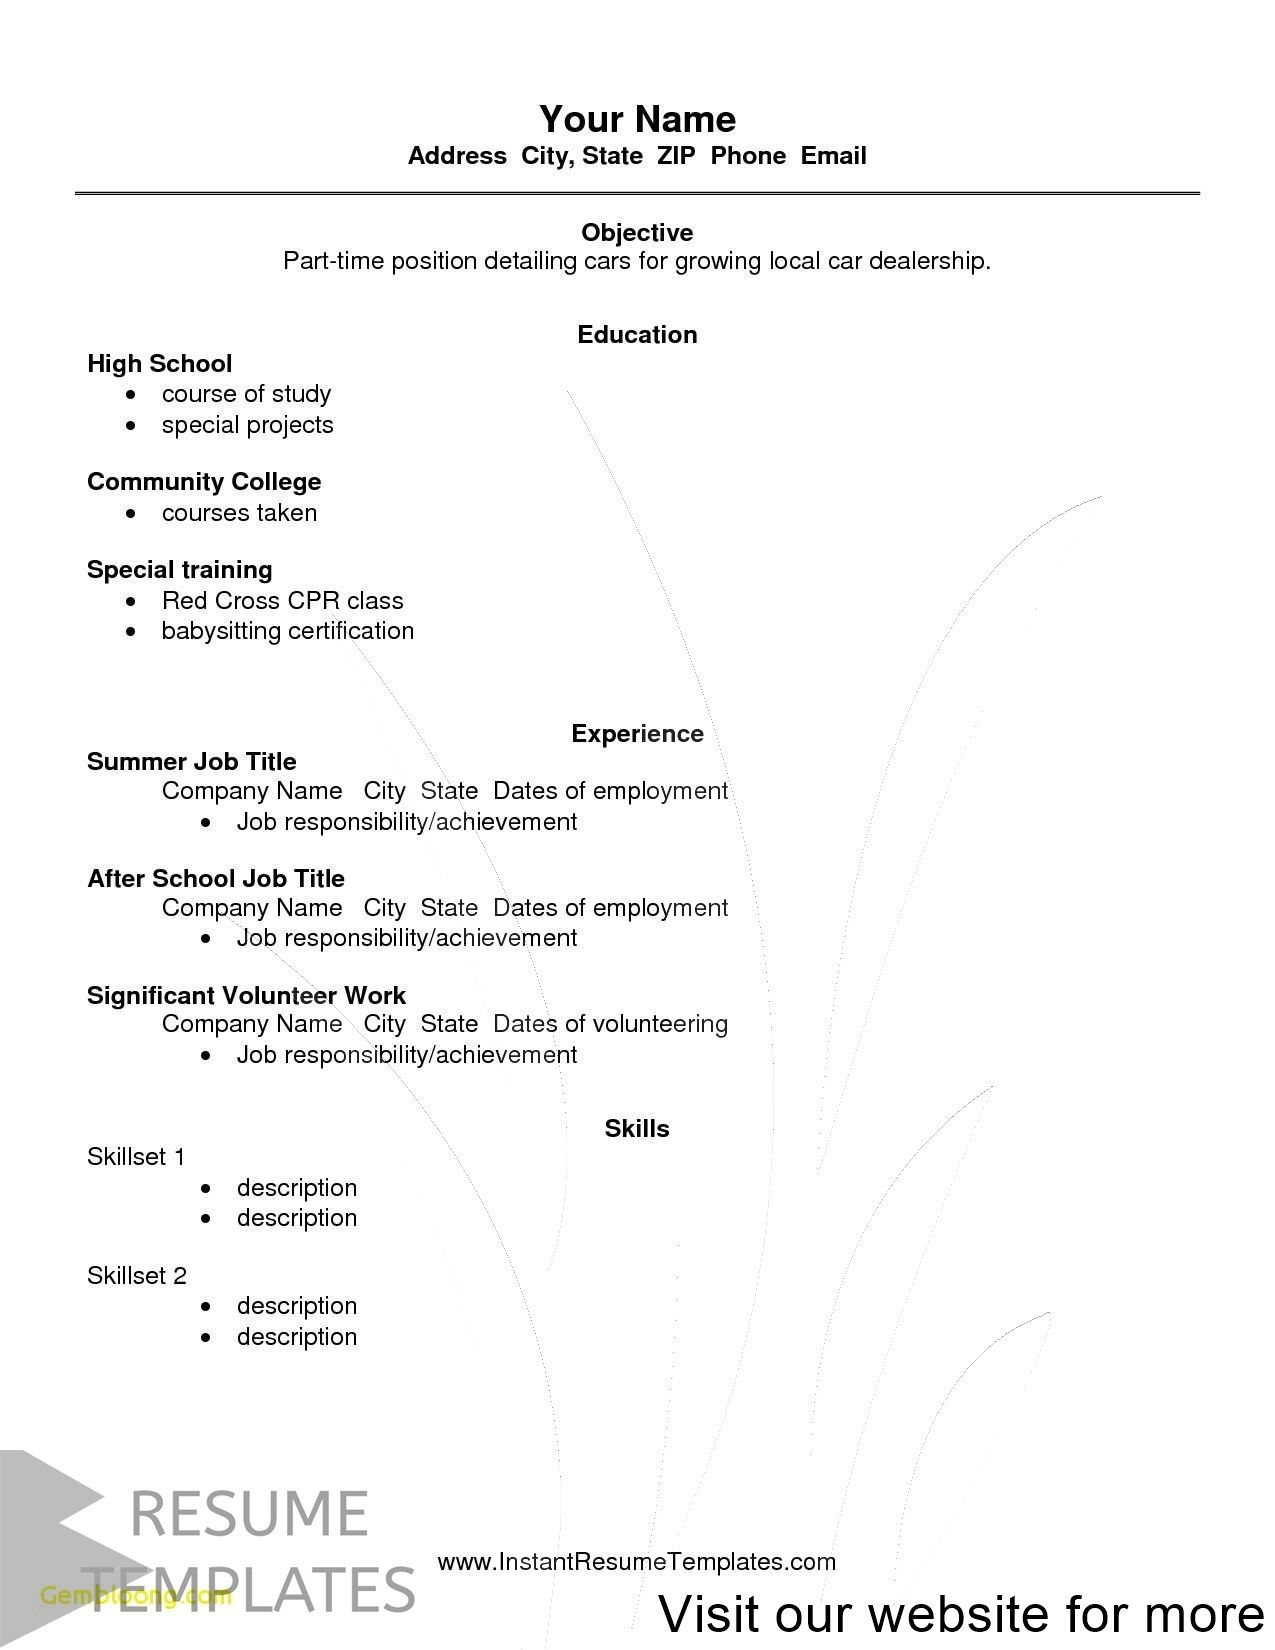 creative resume template free in 2020 Education resume